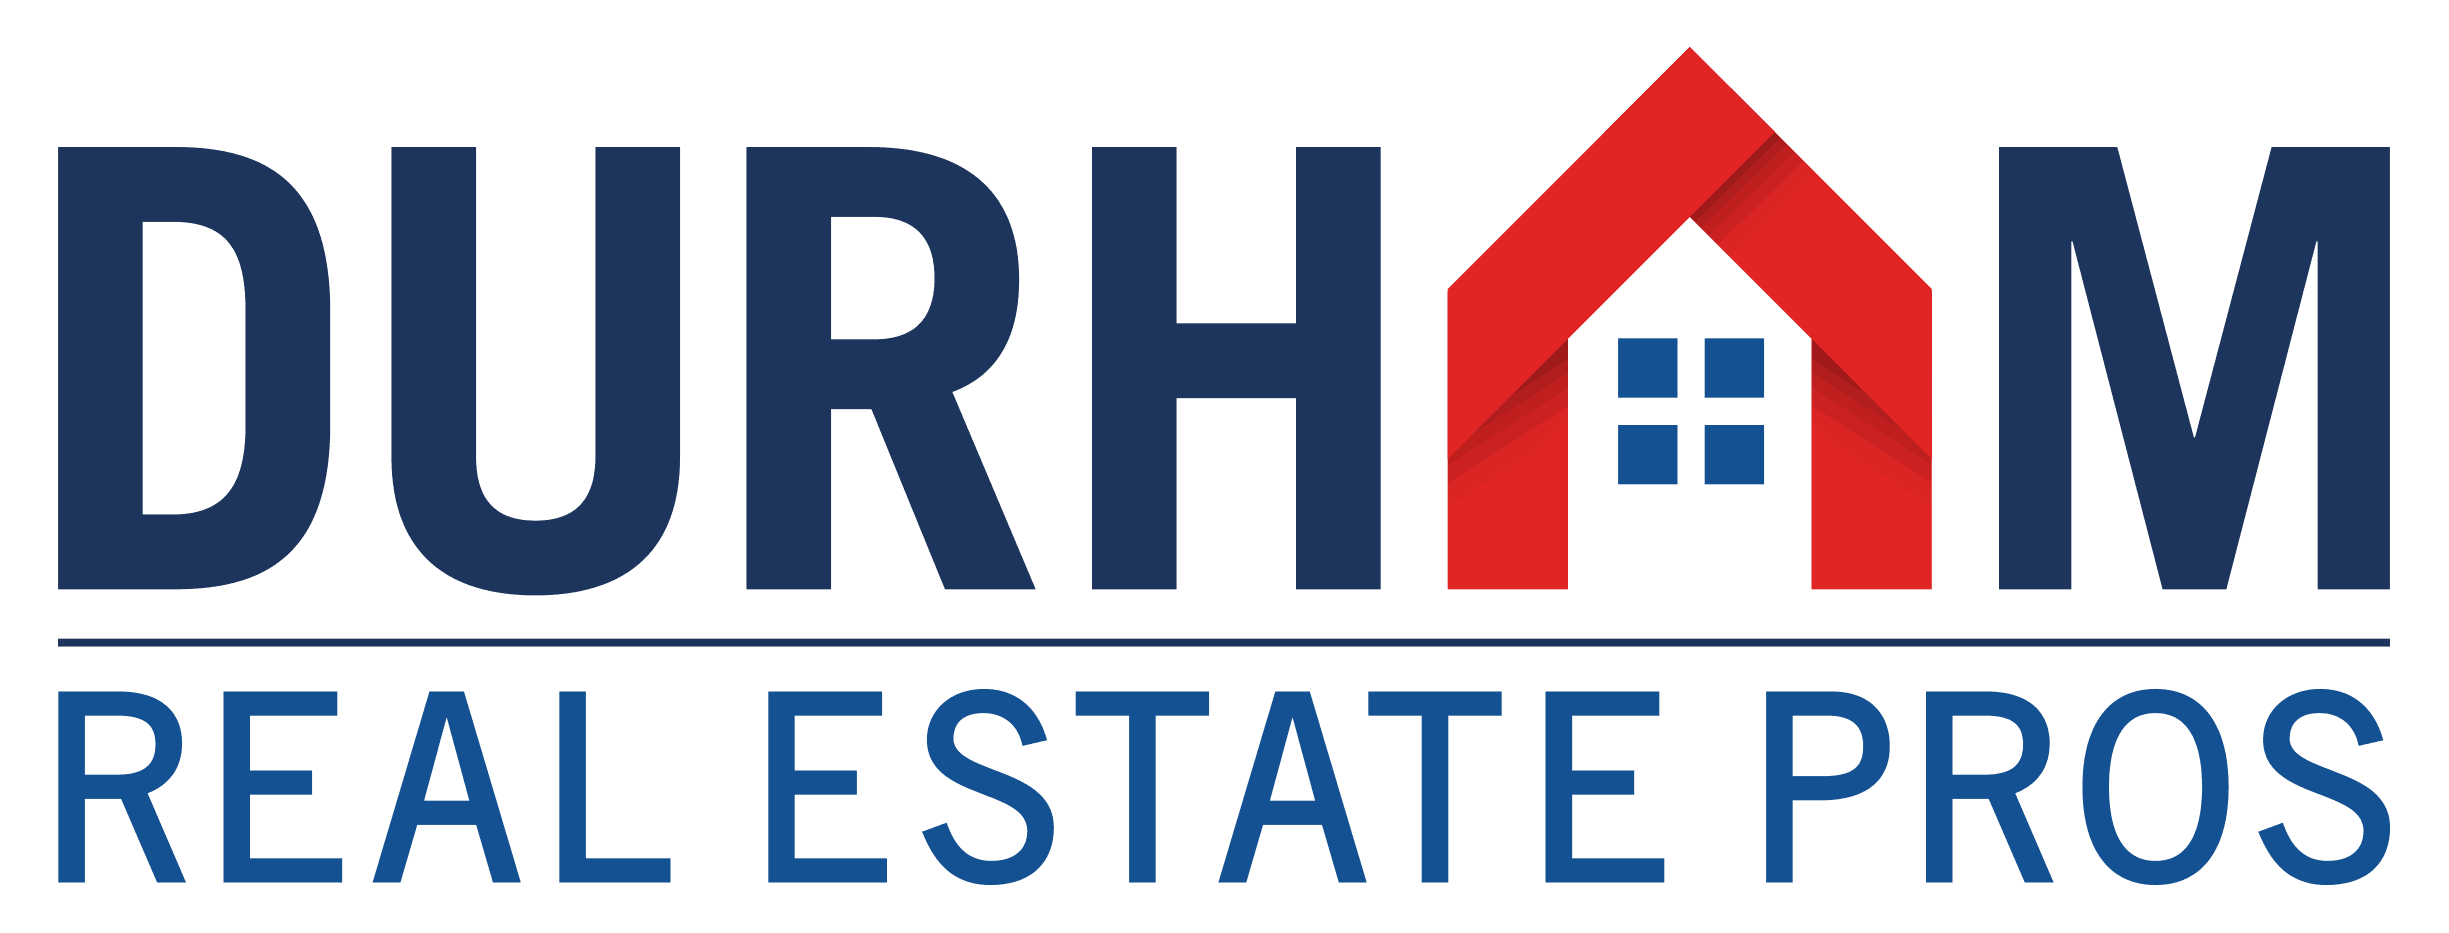 Durham Real Estate Pros